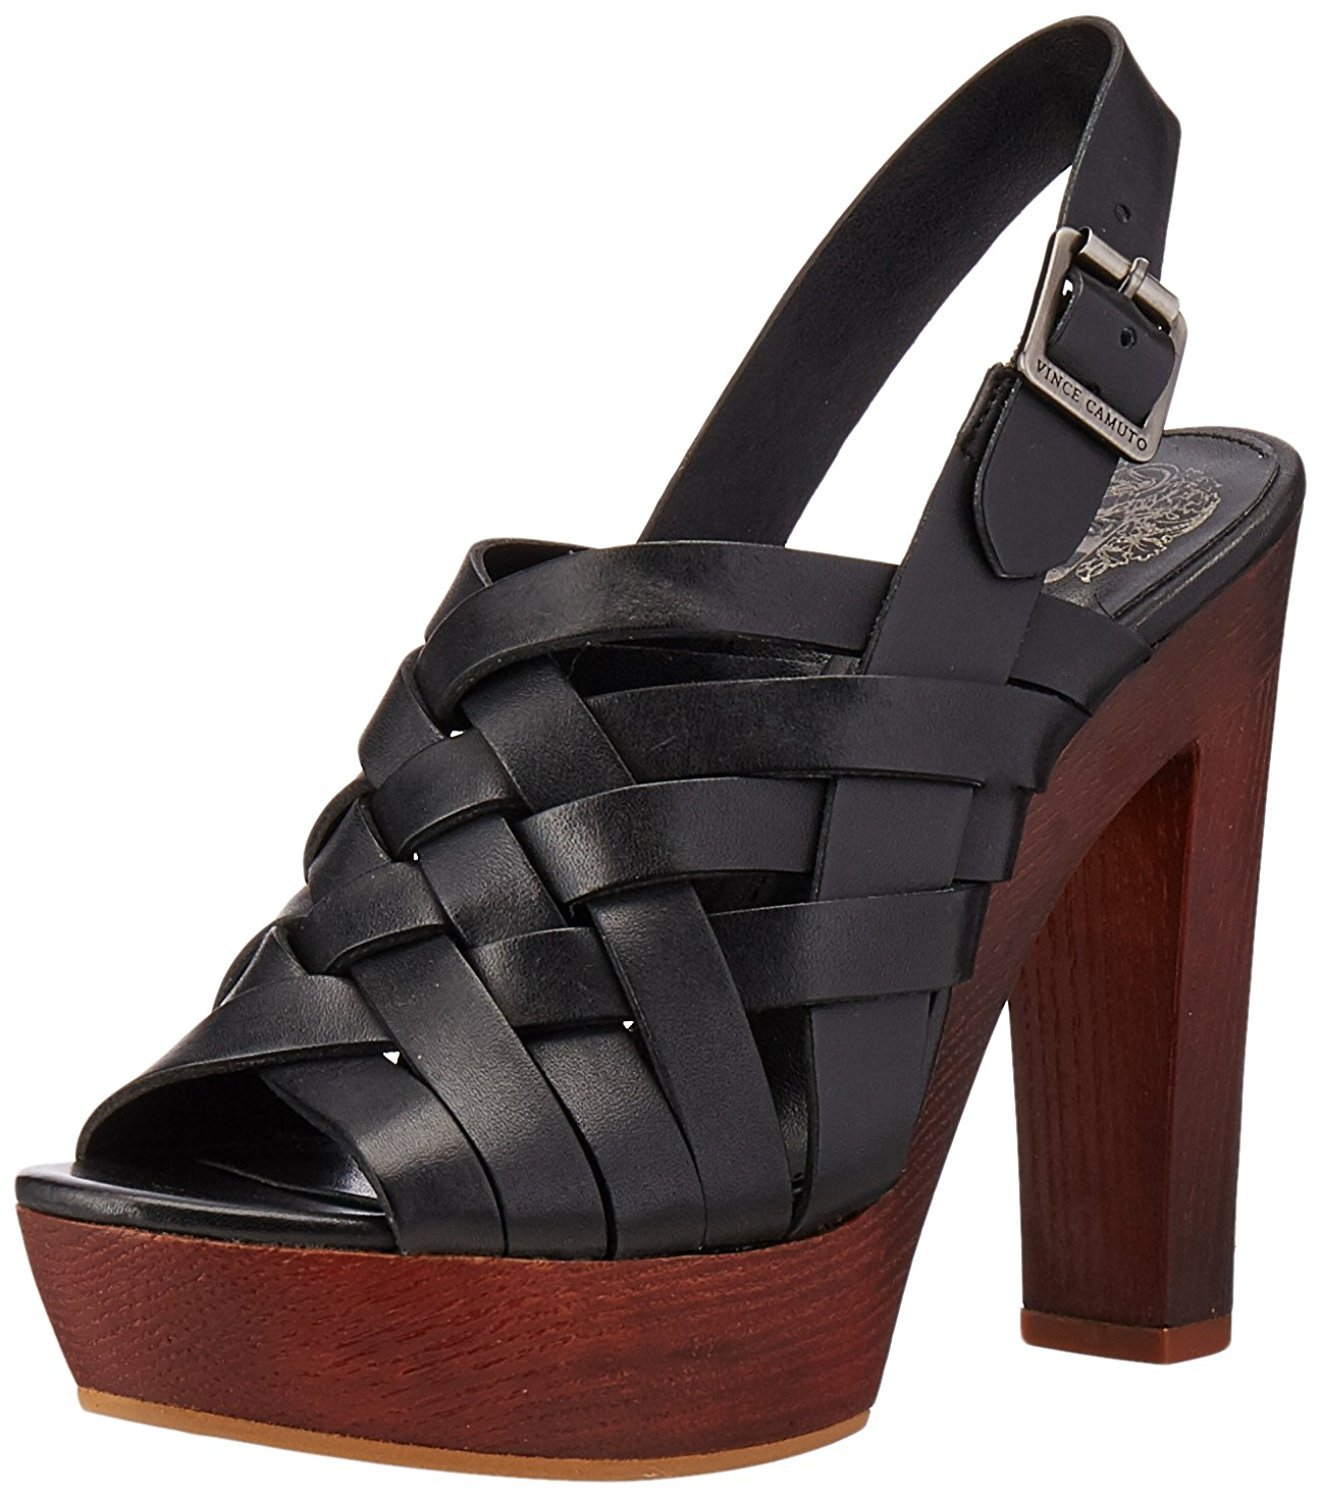 Vince Camuto Womens Elyza Open Toe Casual Leather Platform Sandals, Black, Size 10